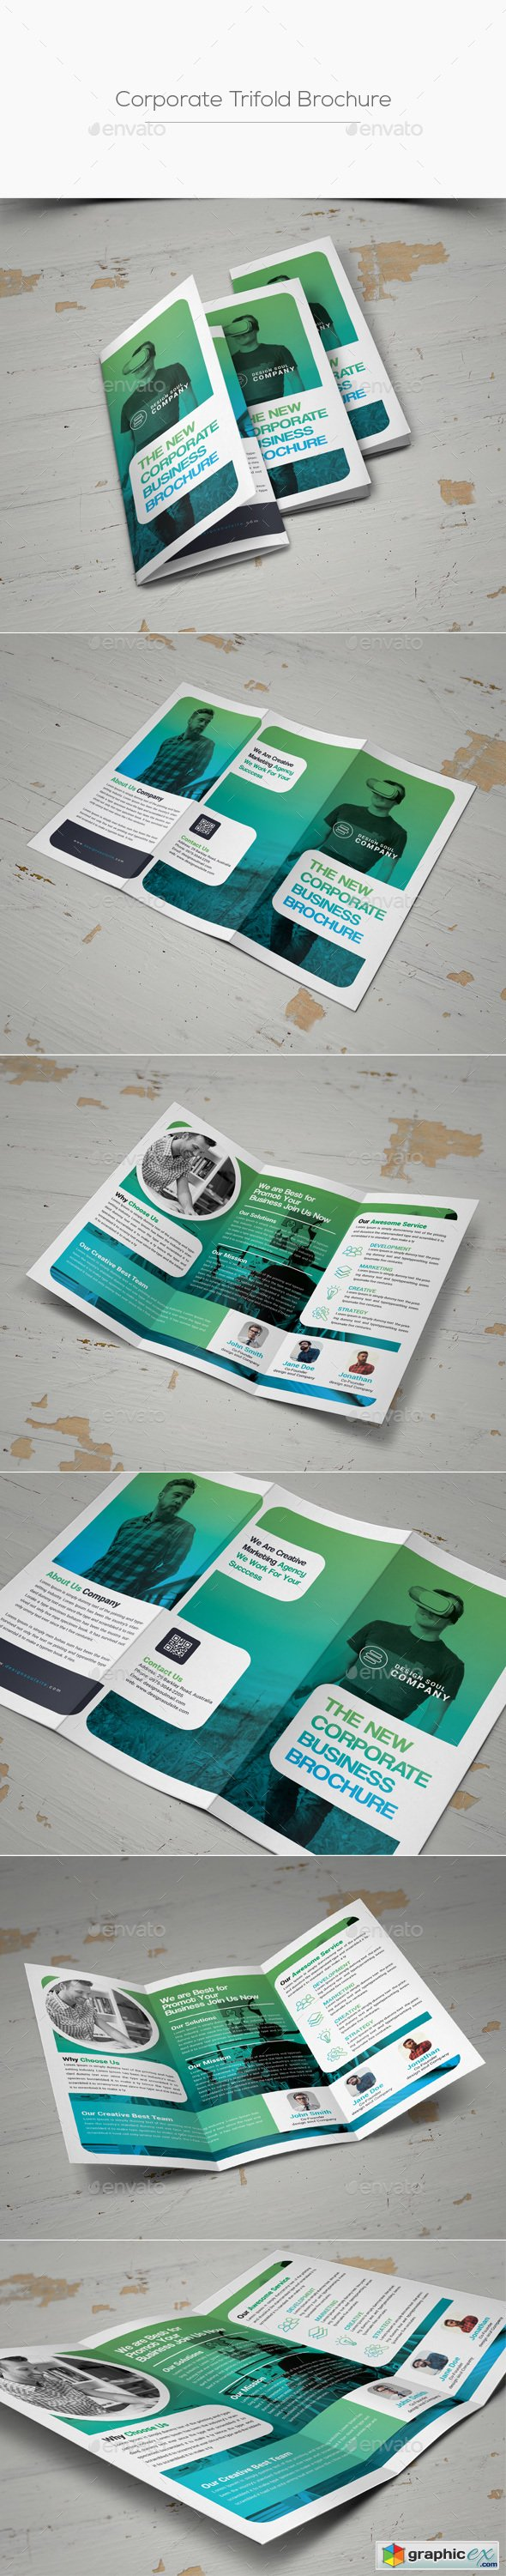 Trifold Brochure 20175694